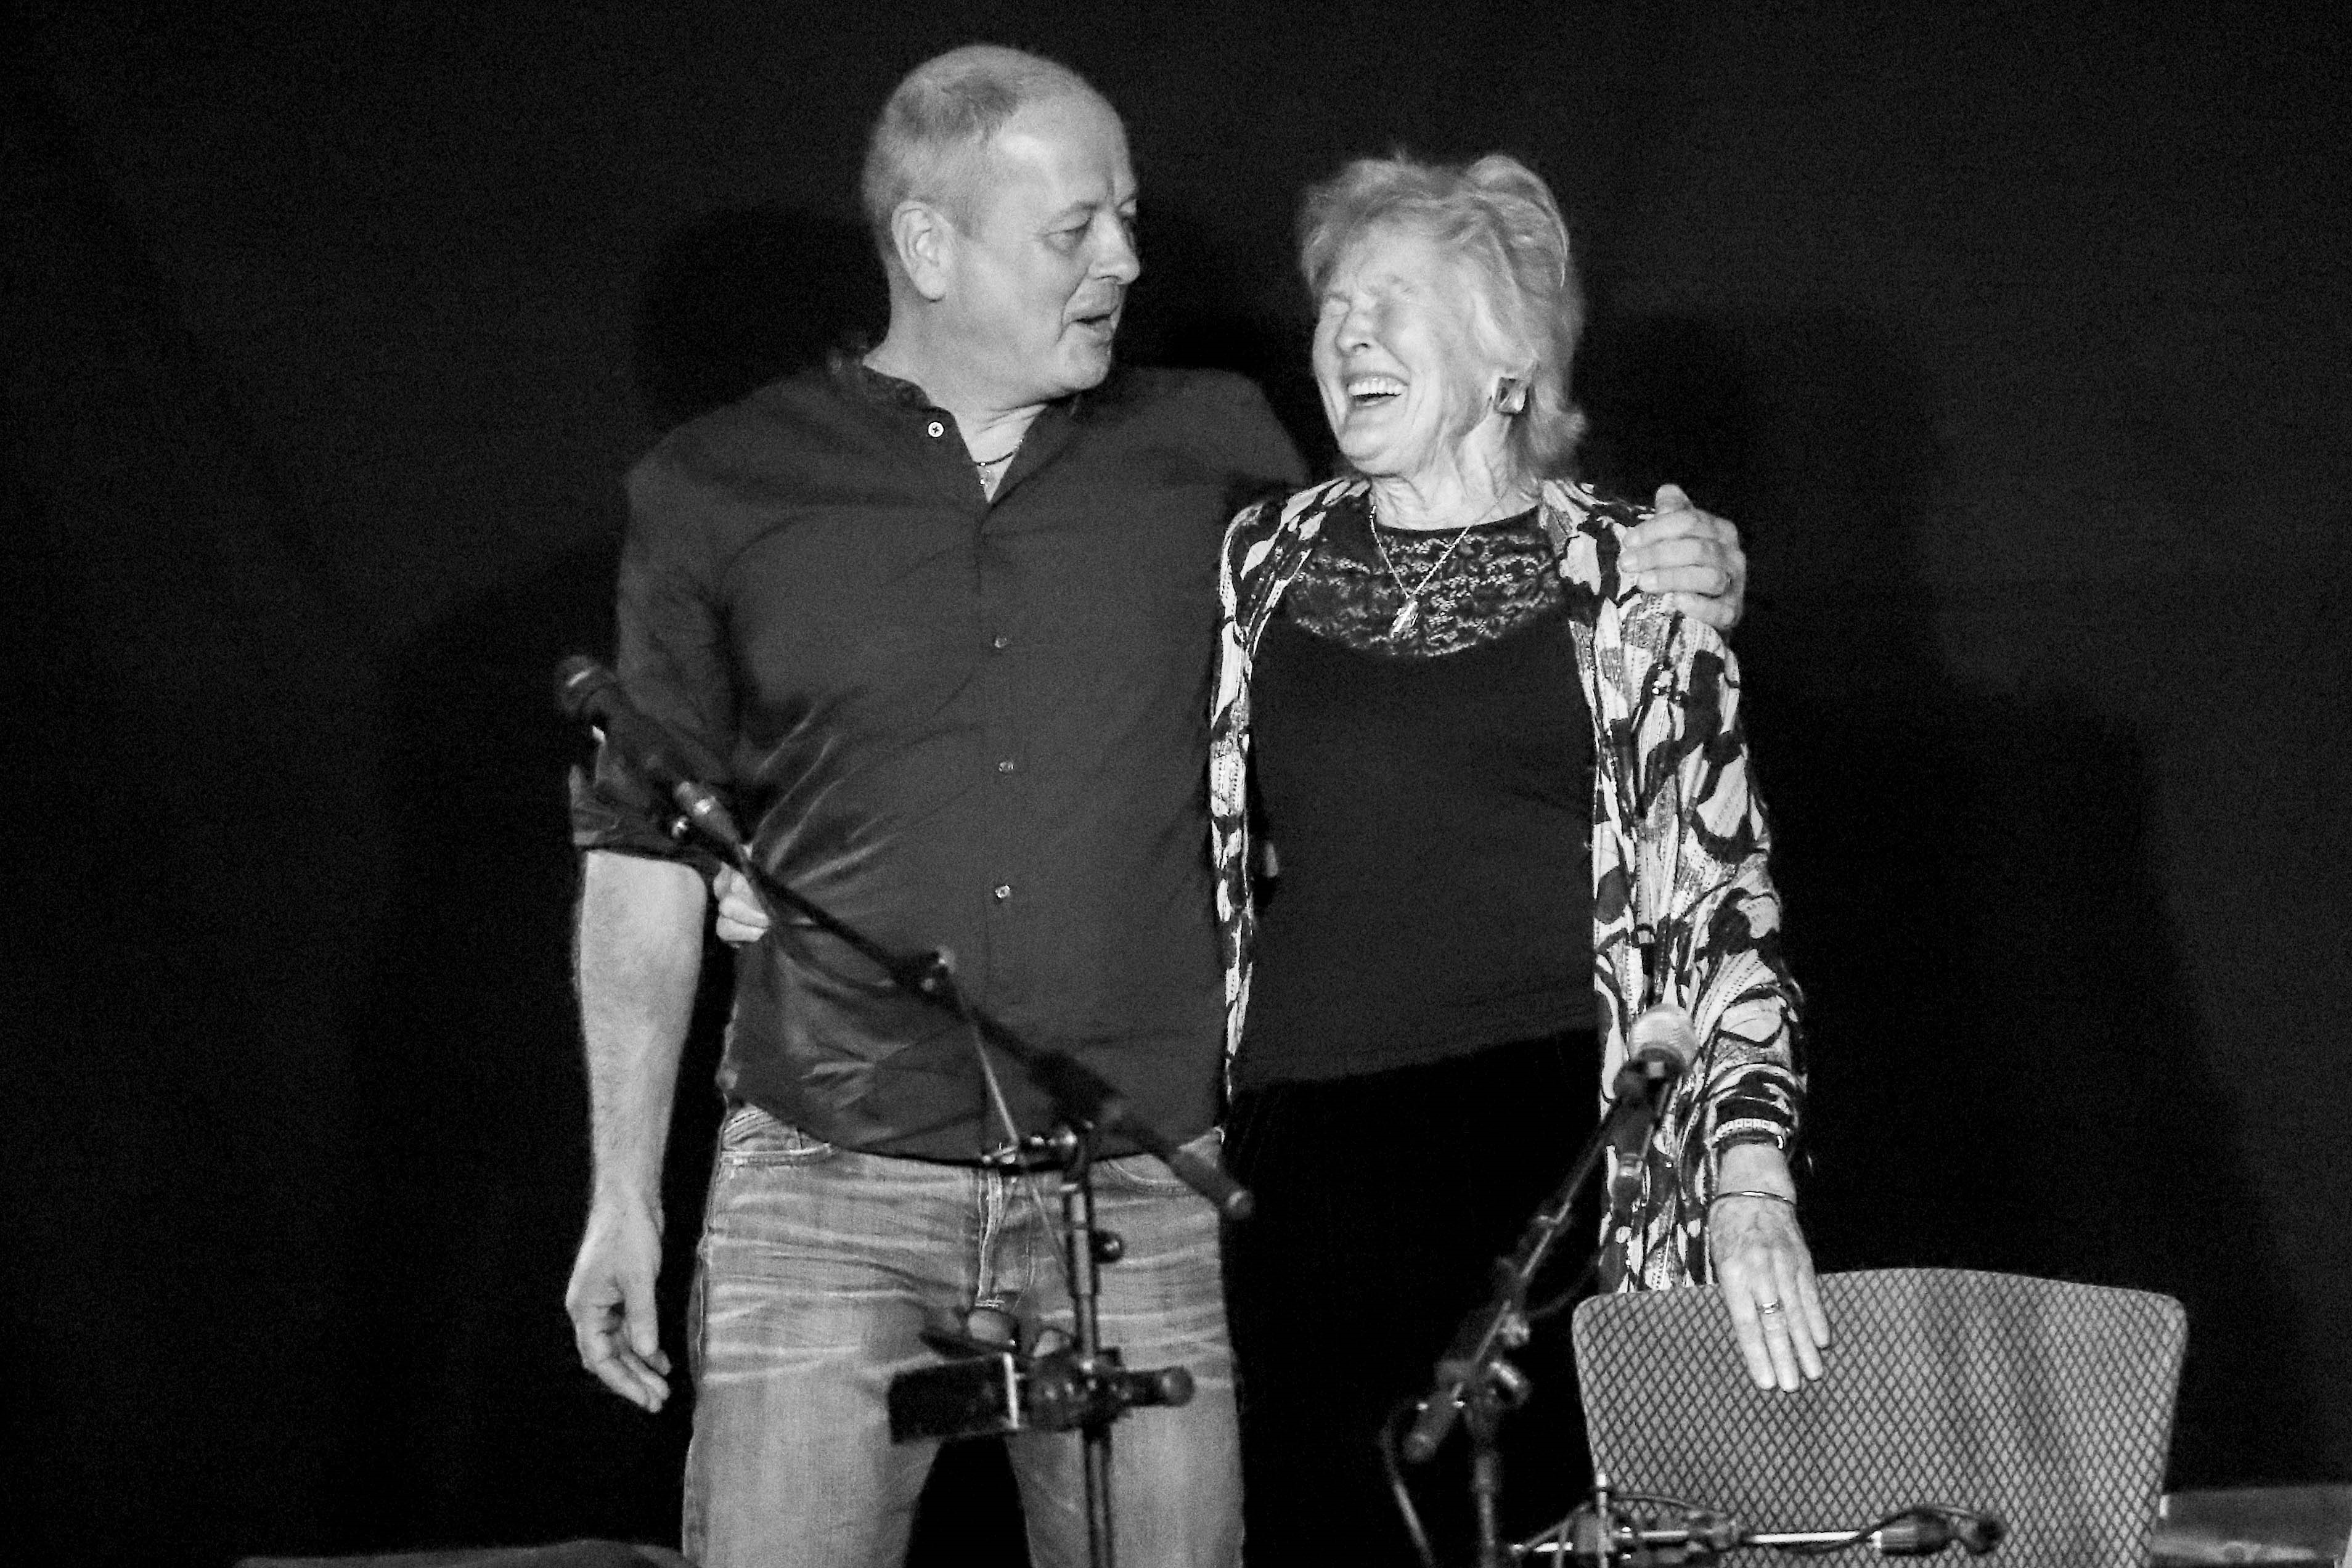 Peggy Seeger with Calum MacColl – The Crescent, York, 27/11/2017